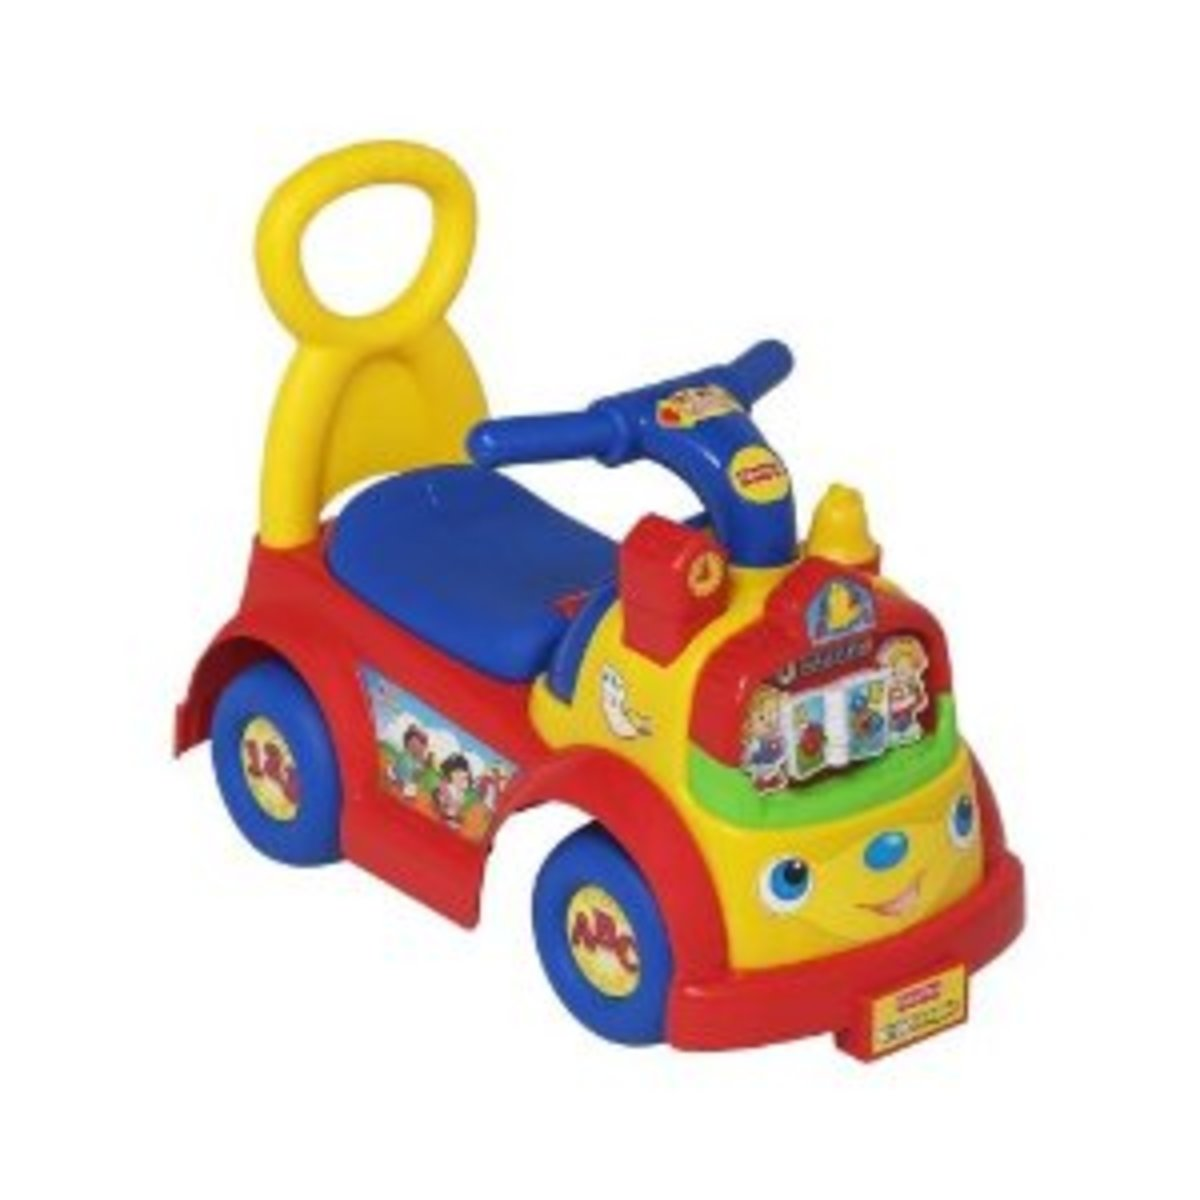 Toys For 1 Year Olds - Top 10 Toys For 1 Year Olds